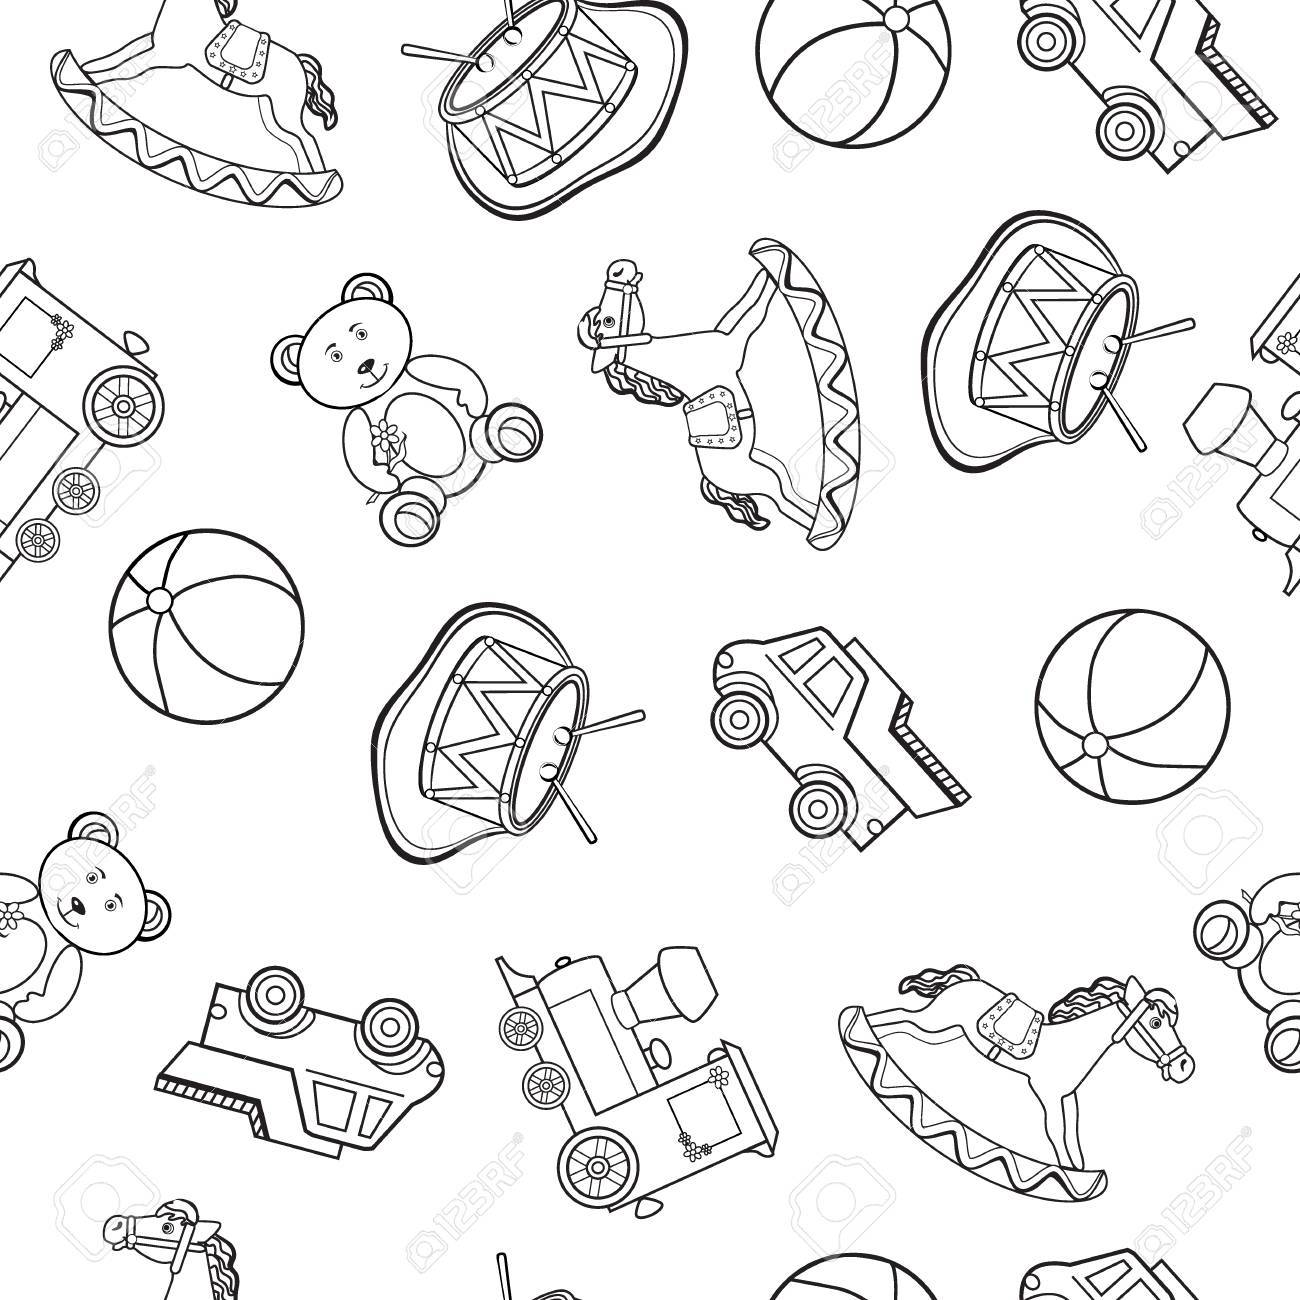 1300x1300 Baby Toy Drawings, Car, Bear, Horse, Ball, Train, Drum Isolated